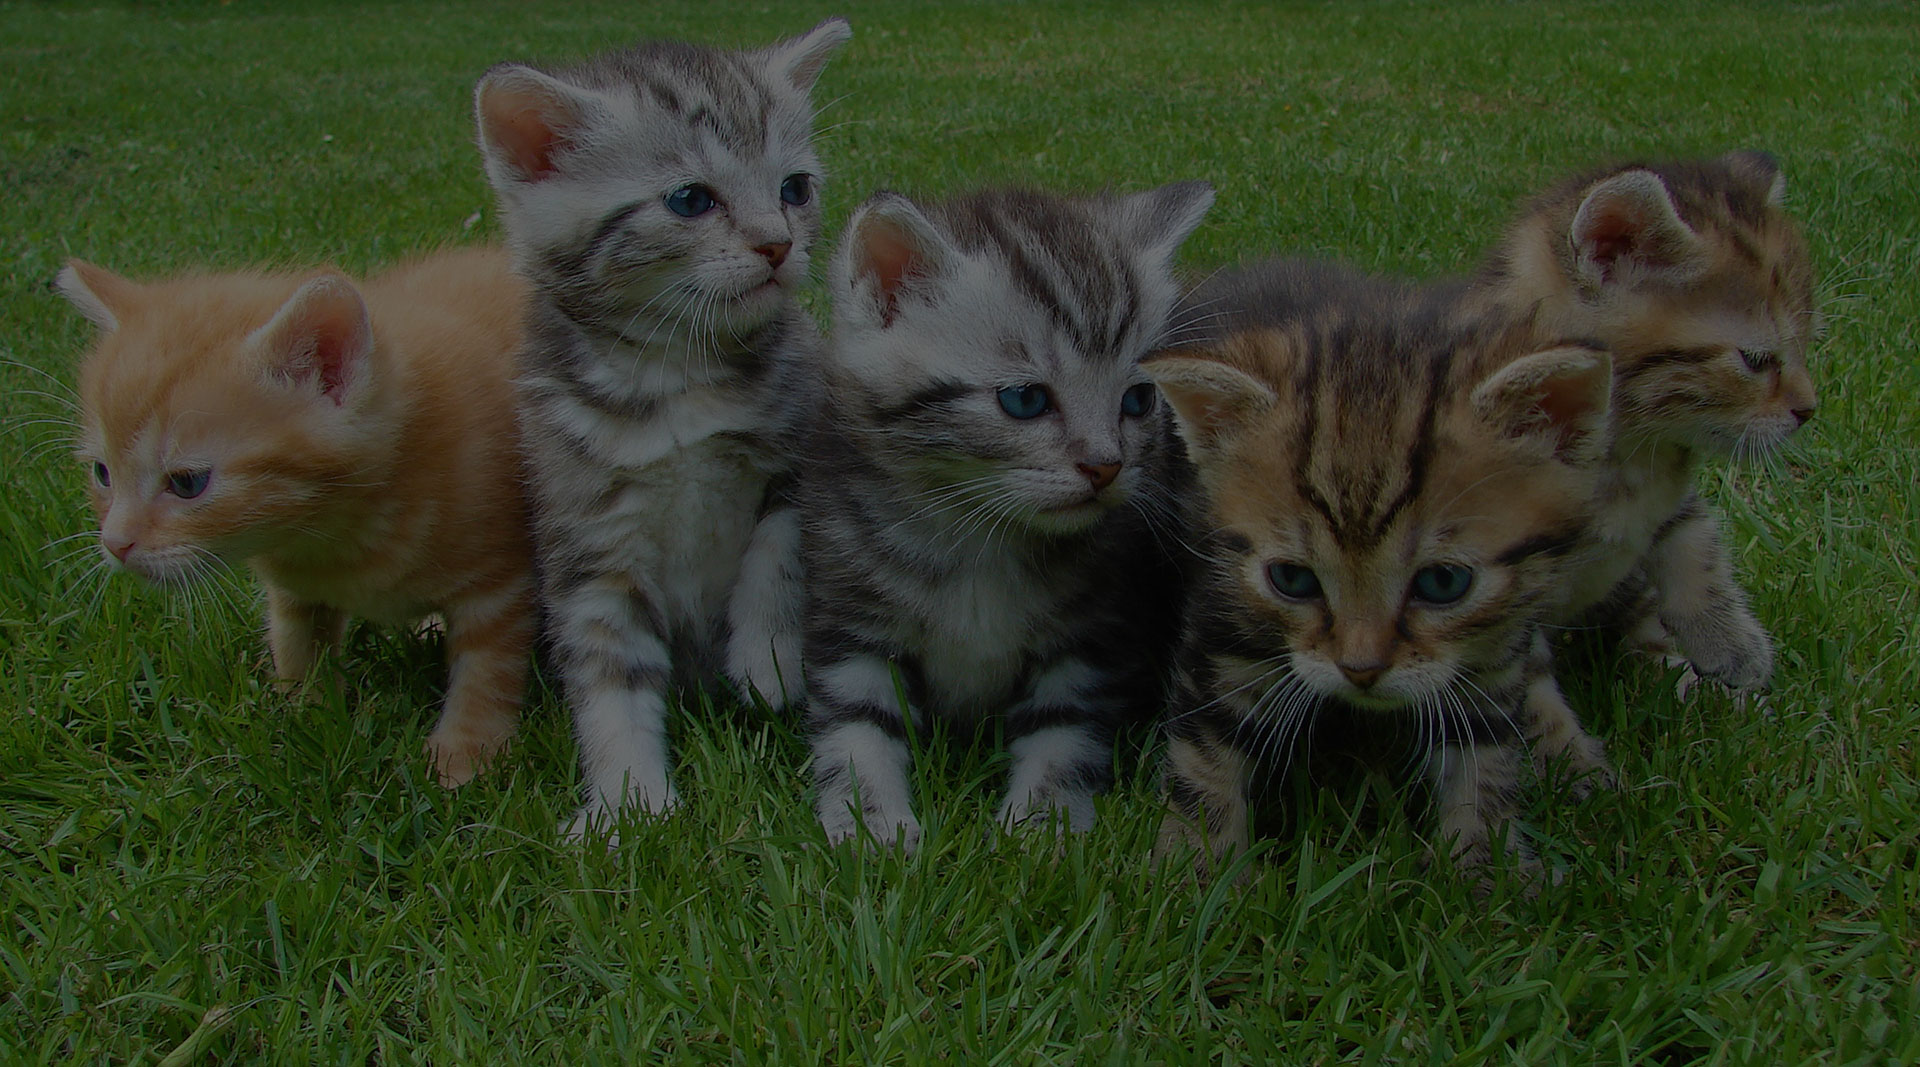 Kittens in the grass together